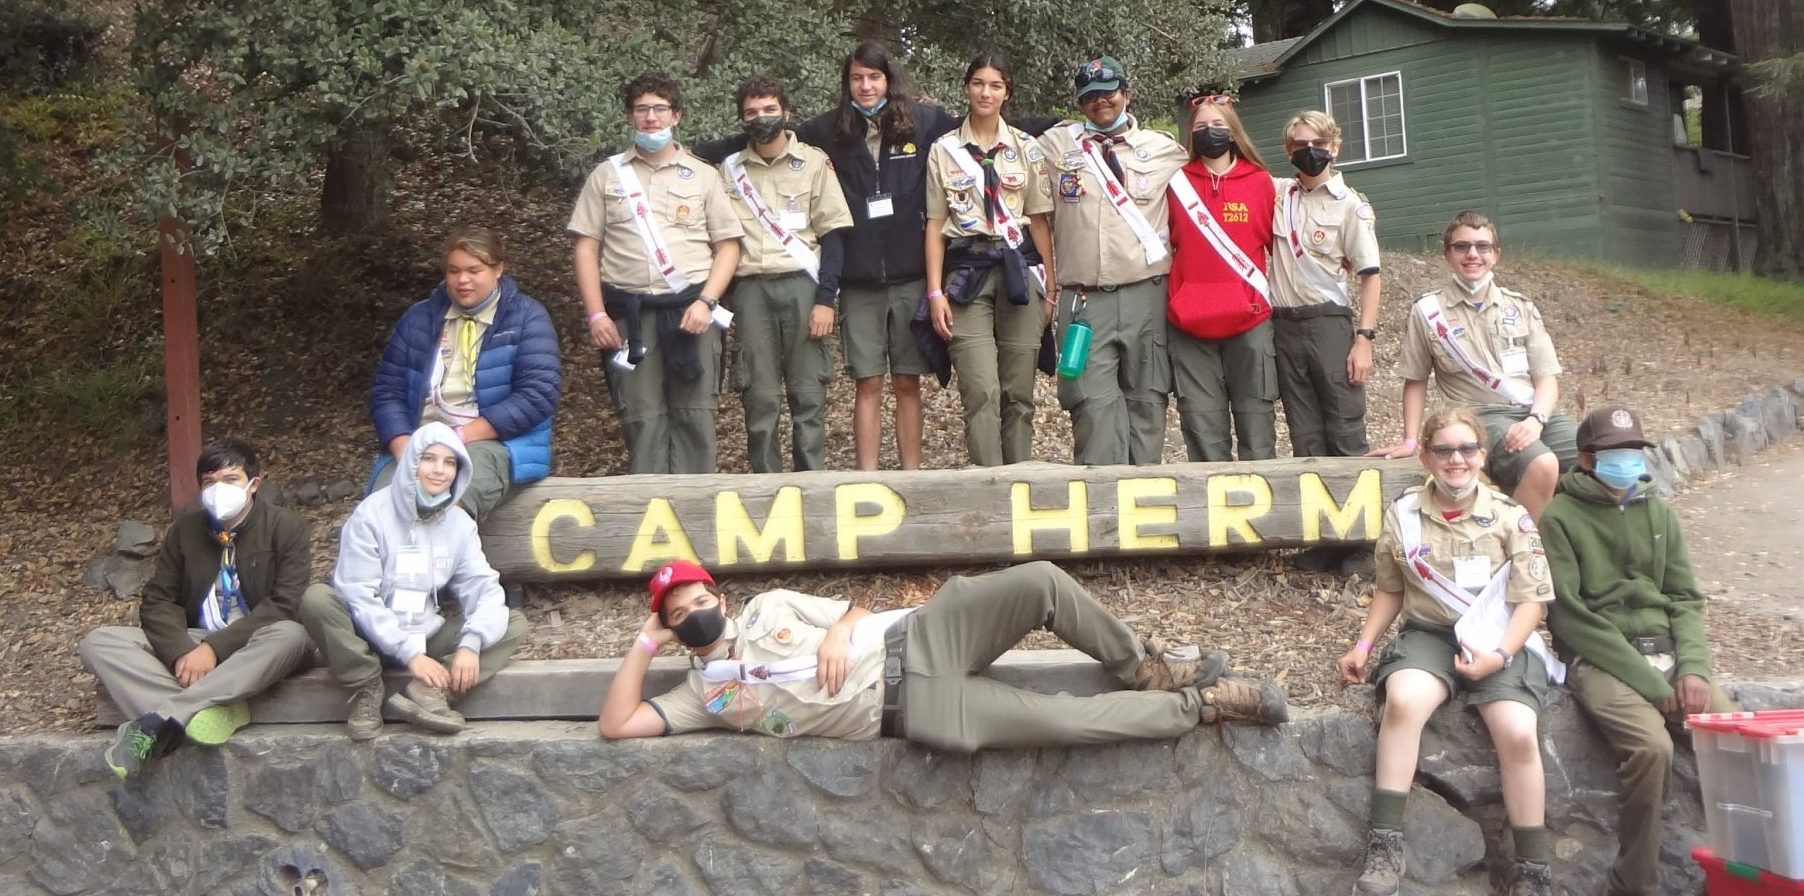 Staff of the 2021 Induction posing for a photo in front of the Camp Herms sign